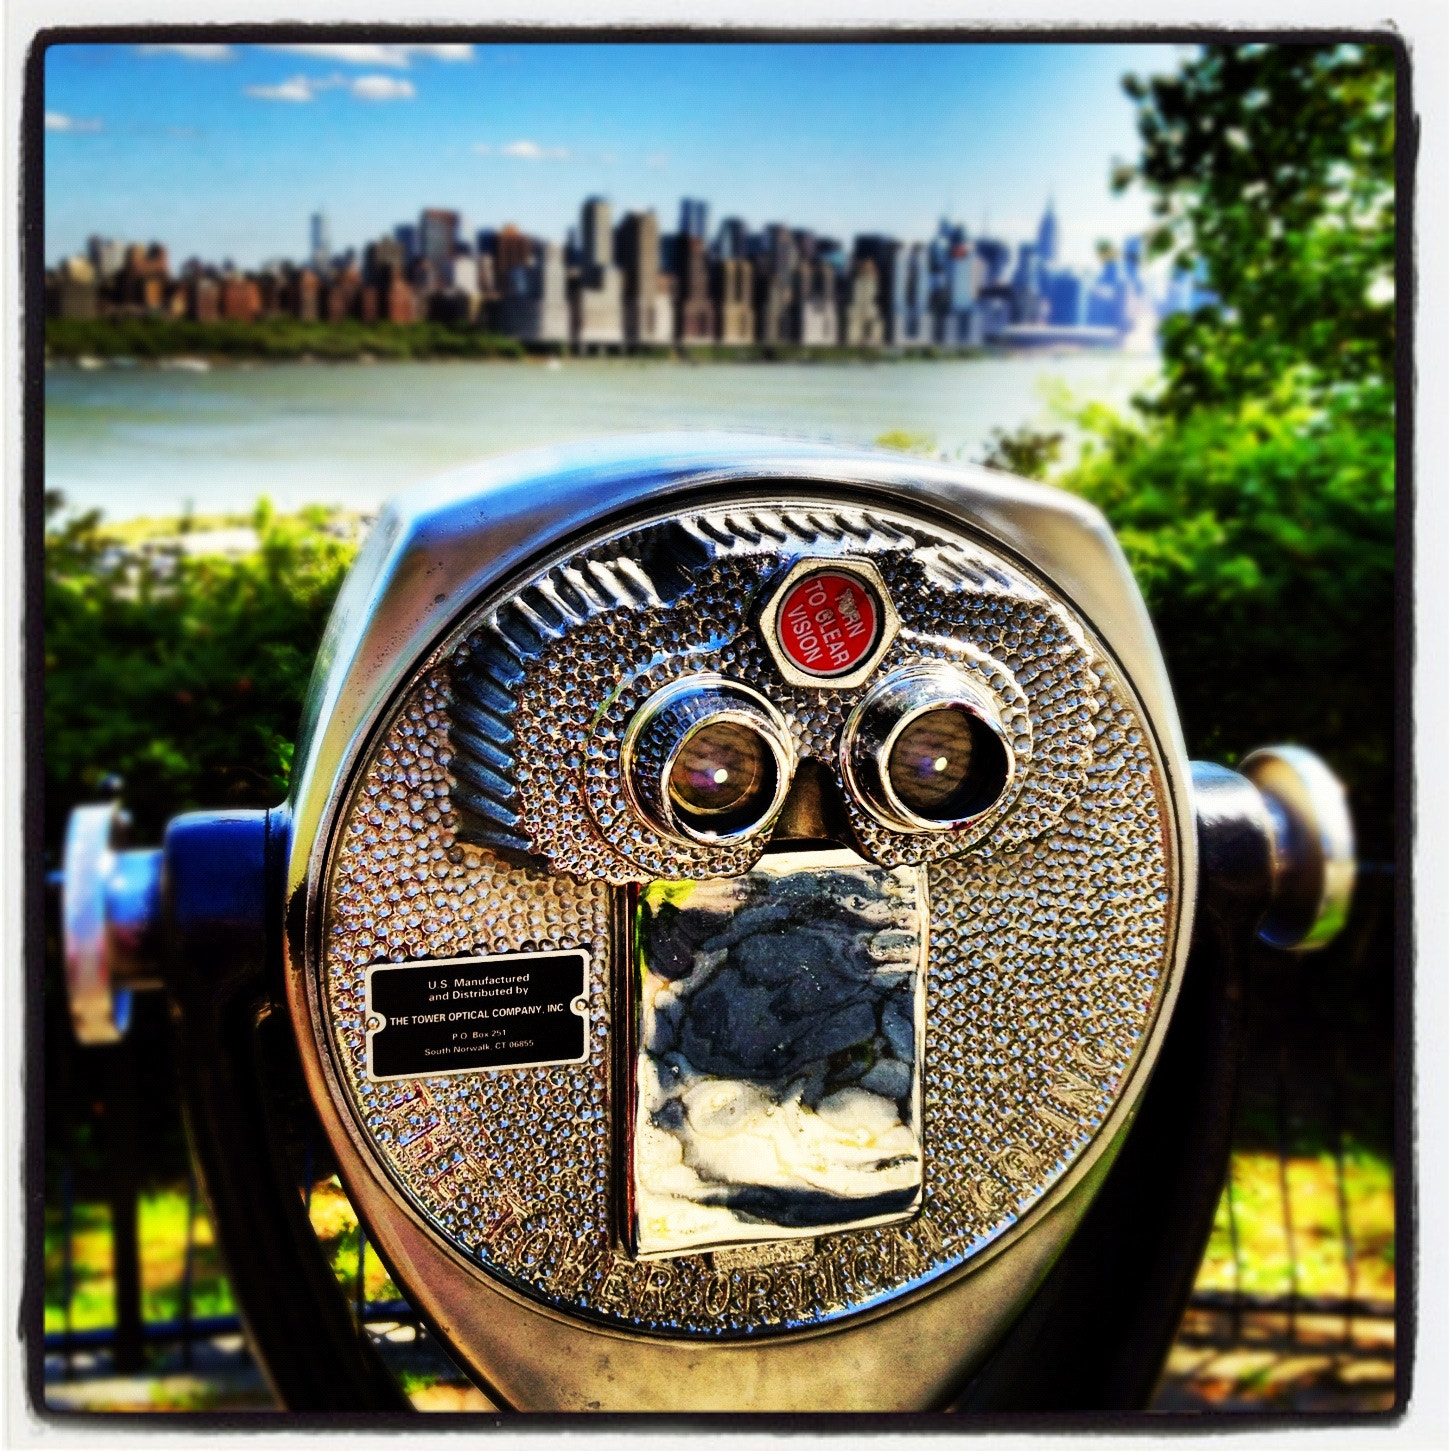 Photograph Viewer with a View by Ryan Sheehy on 500px